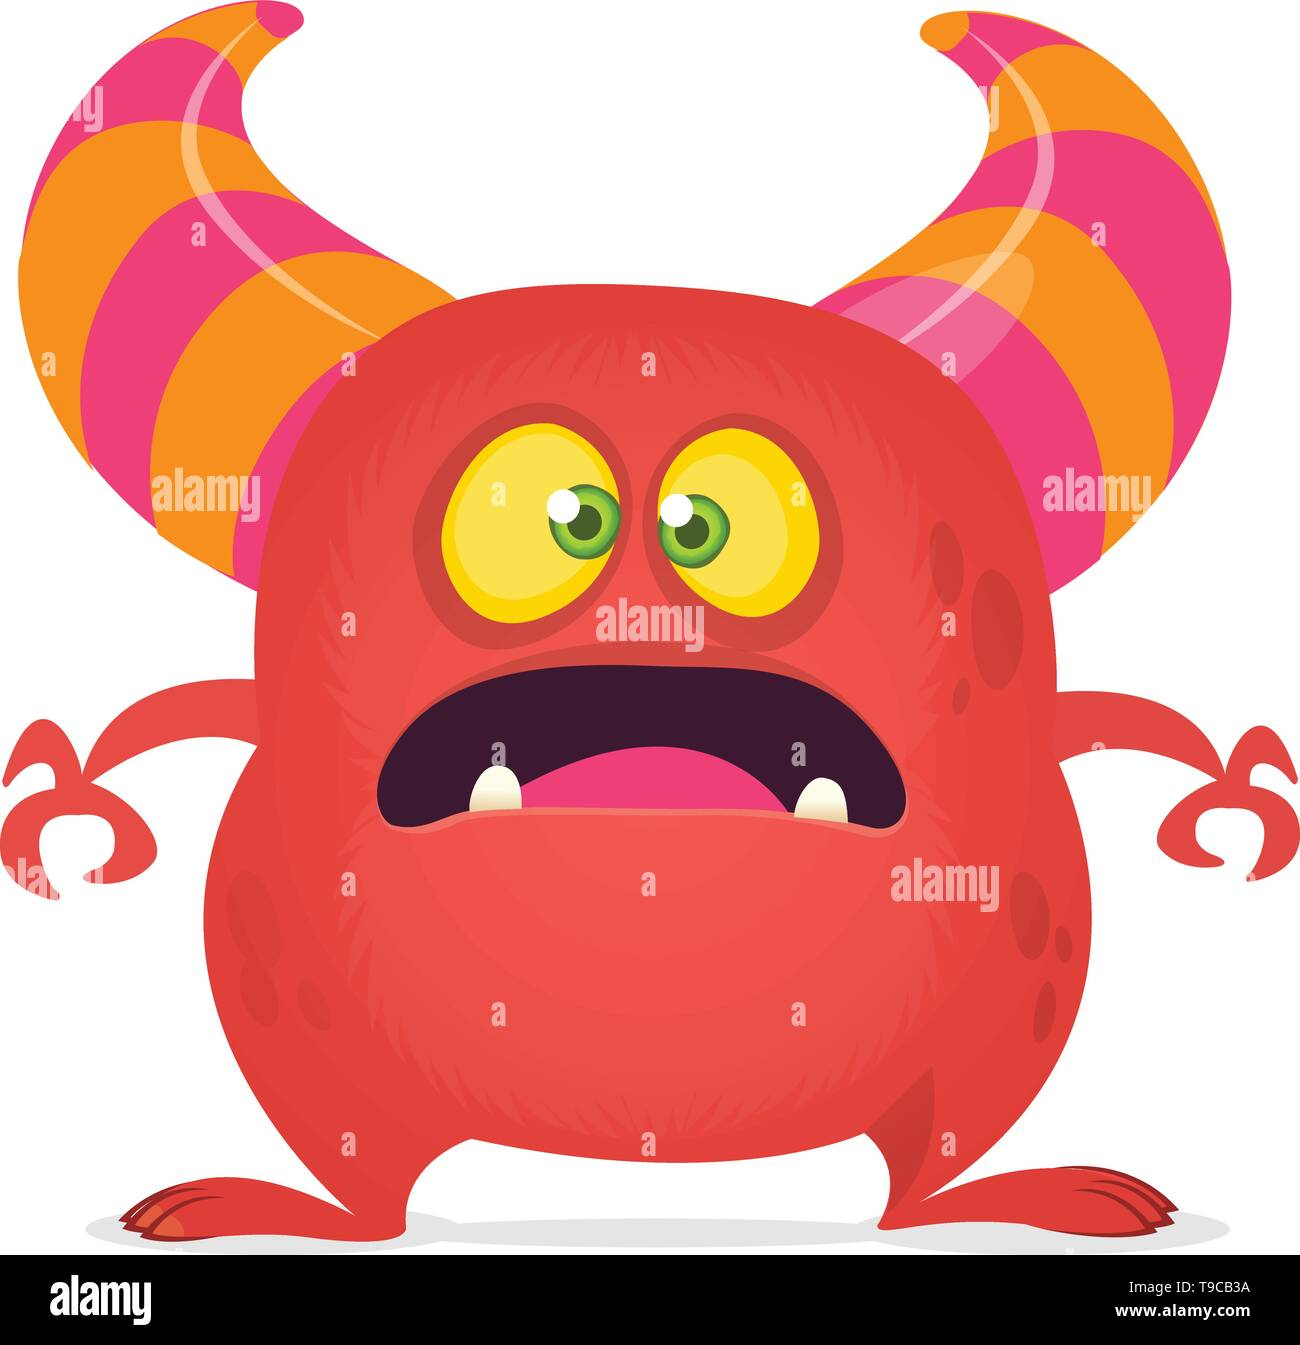 Scared cartoon monster laughing. Vector red monster illustration. Halloween design - Stock Image